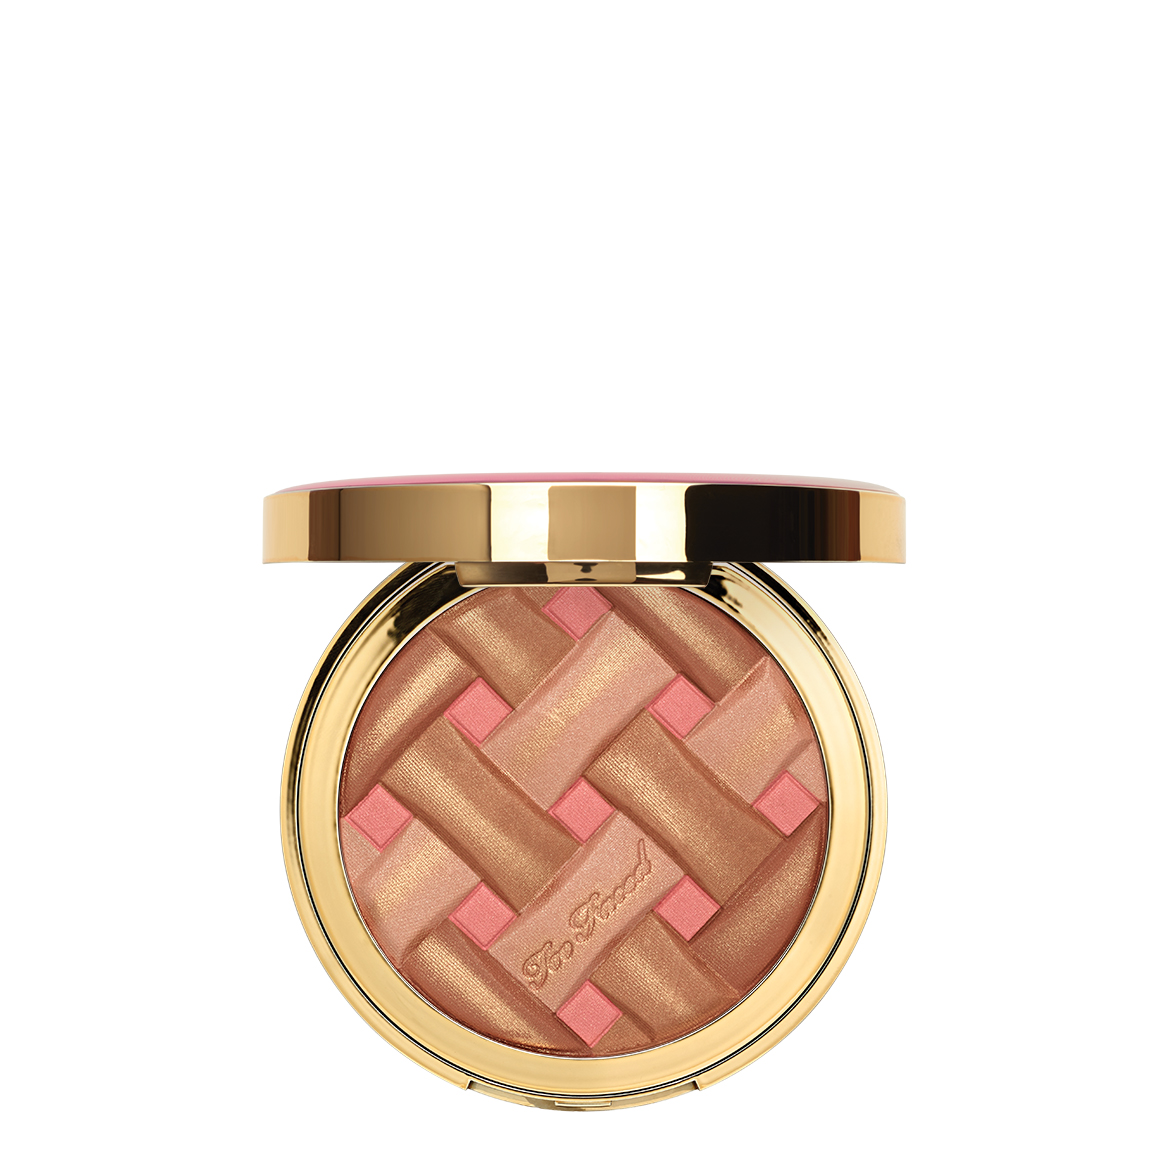 Too Faced Sweetie Pie Bronzer A Powder Bronzer With A Radiant Matte Finish